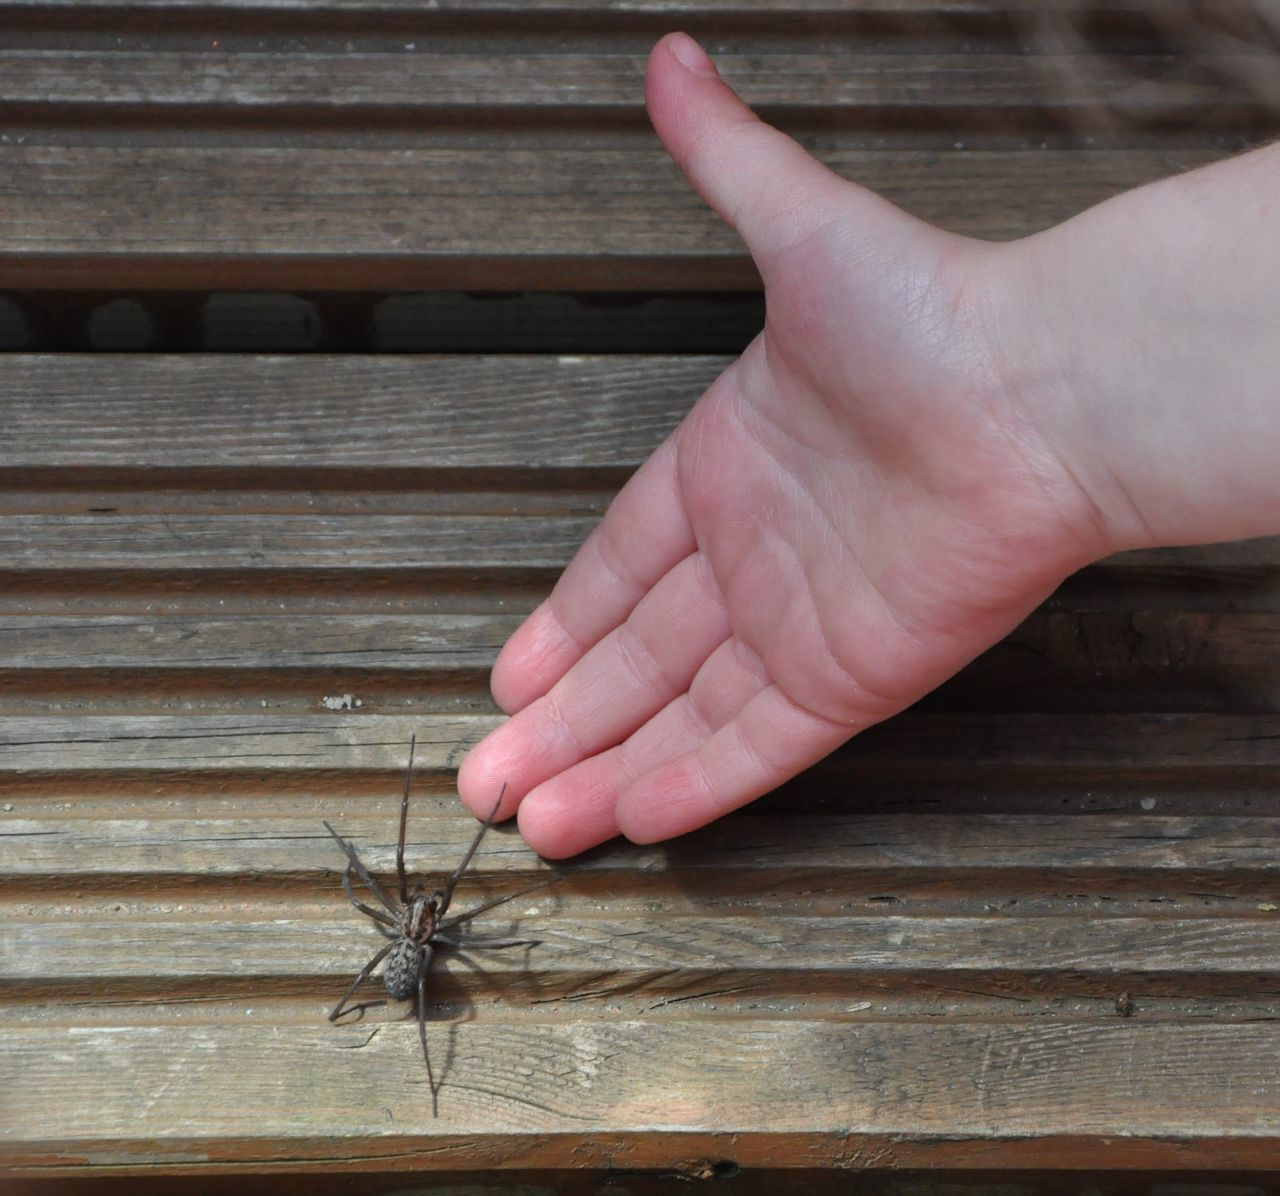 Close-up Cropped Day Detail Focus On Foreground Human Finger Lifestyles Nature Outdoors Part Of Person Plank Selective Focus Spider Spider On Hand Unrecognizable Person Wood Wood - Material Wooden